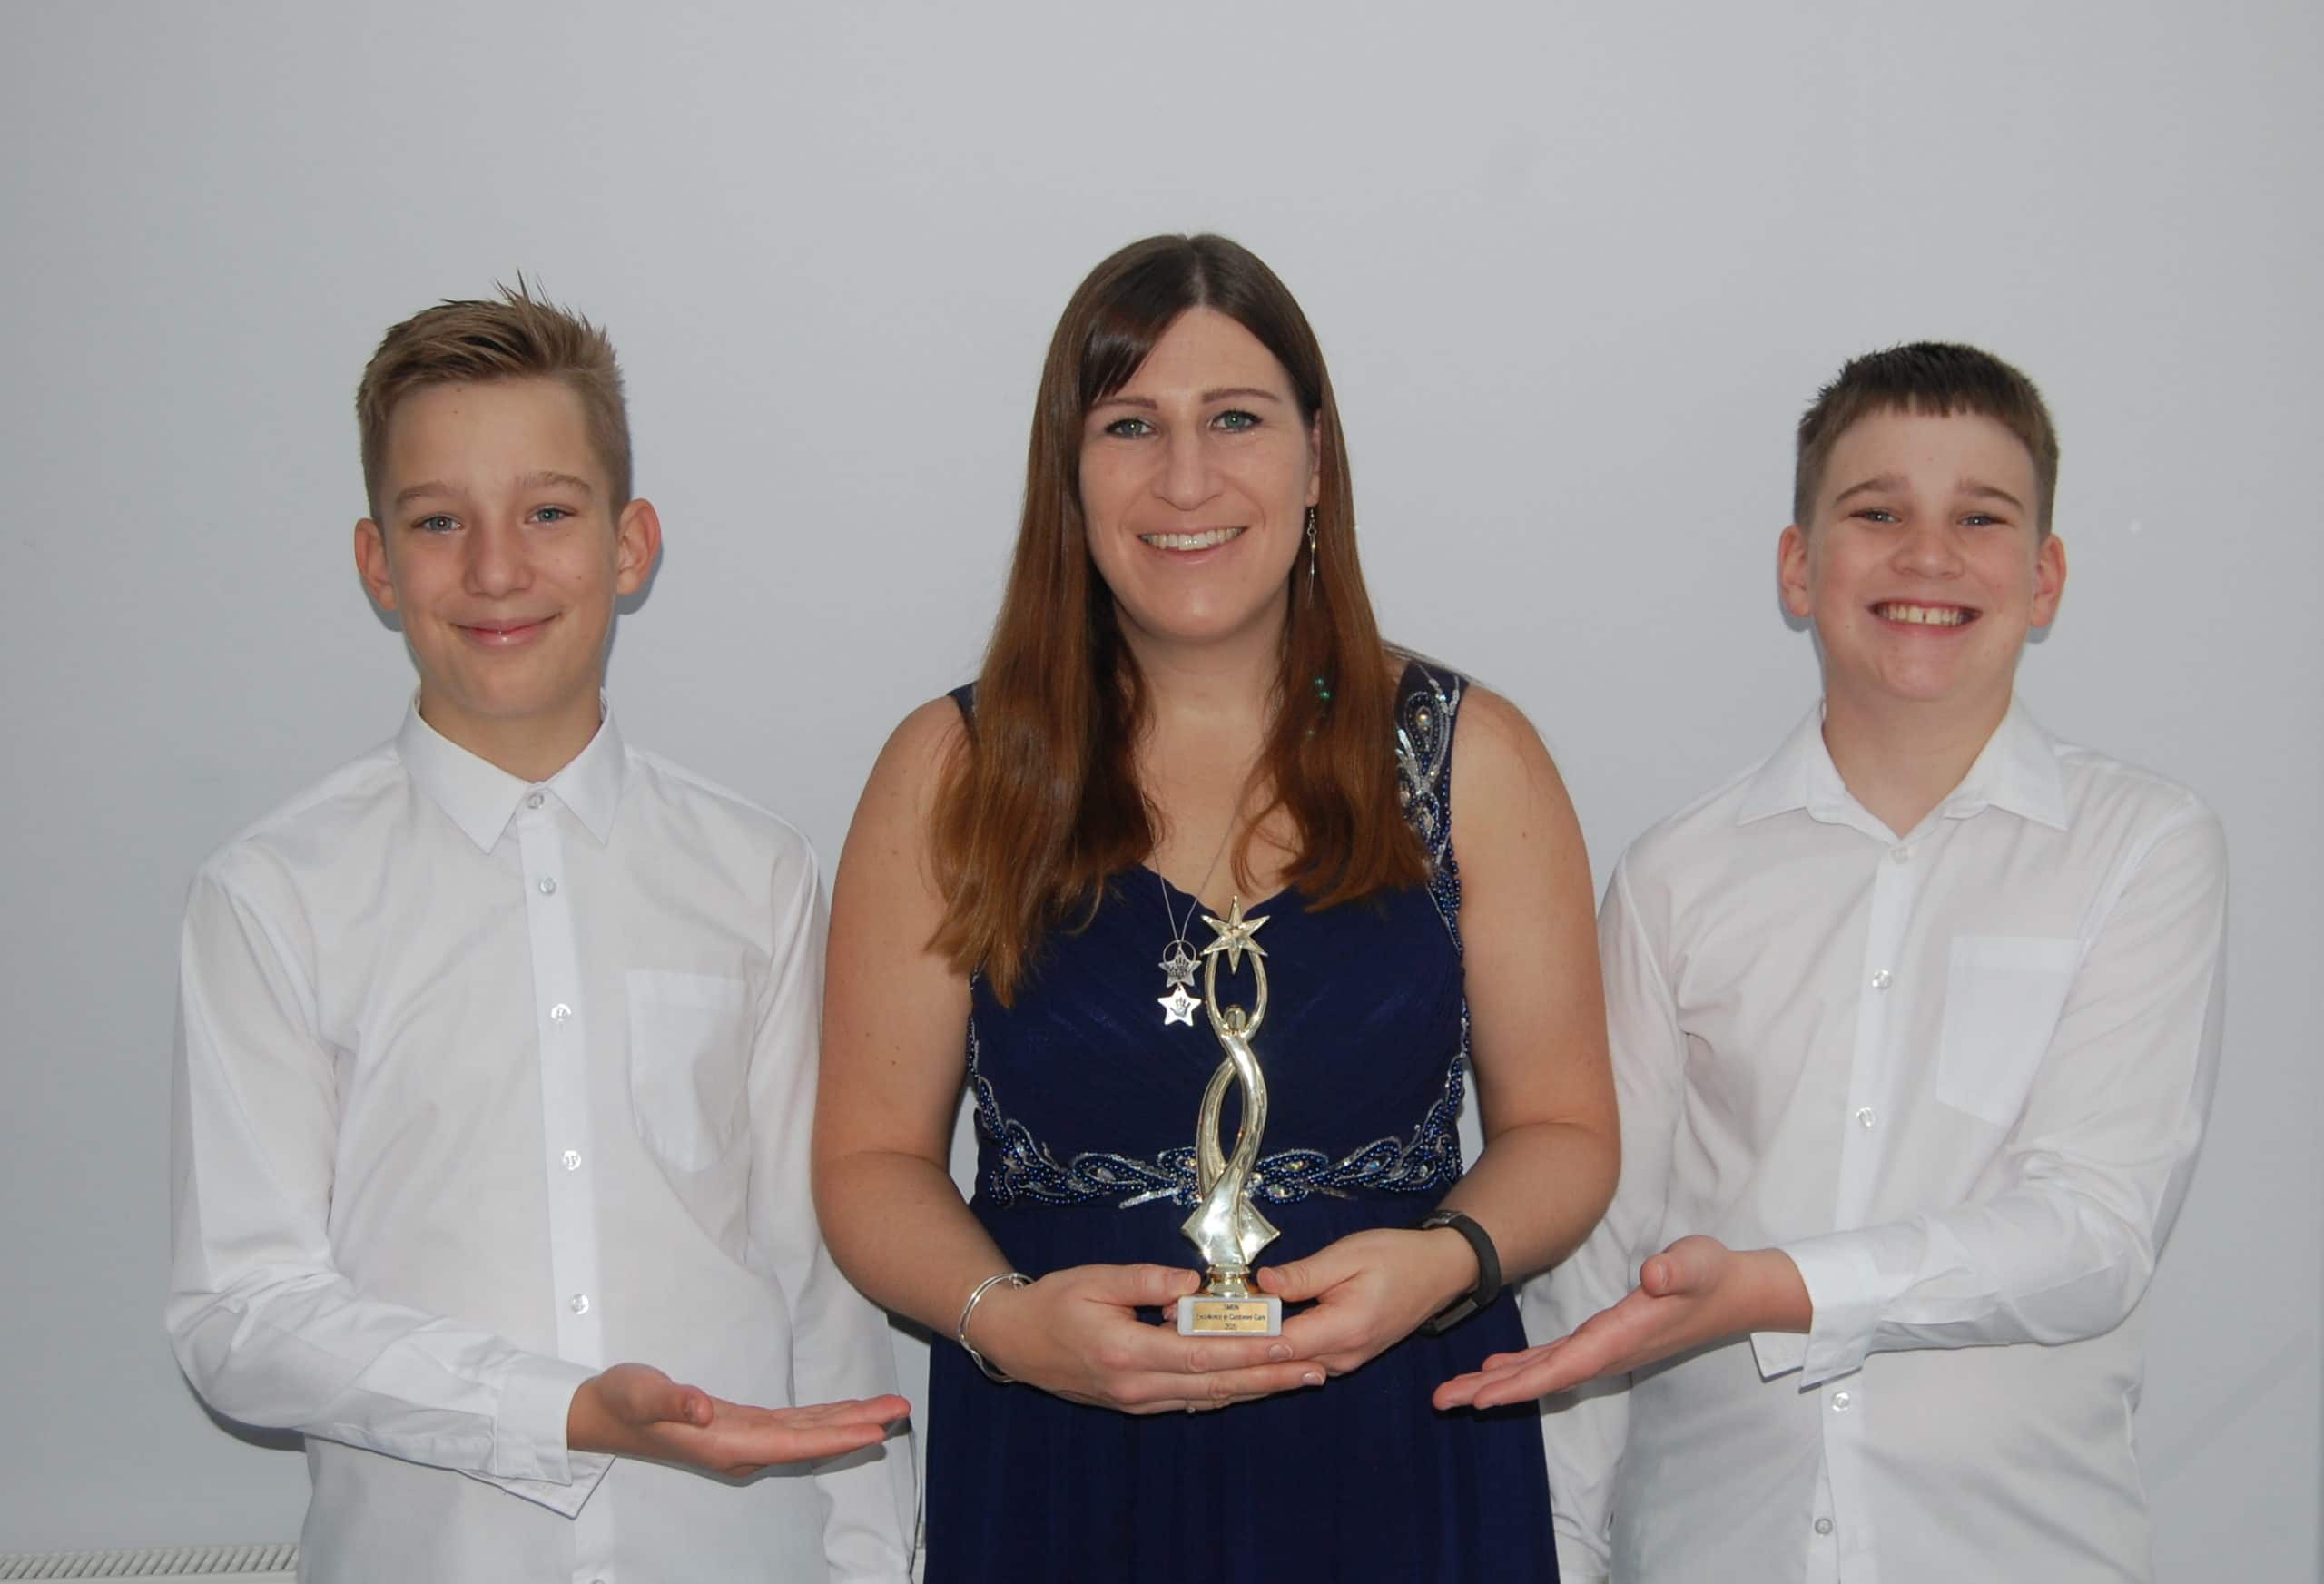 Lisa, Ollie and Jake with Award